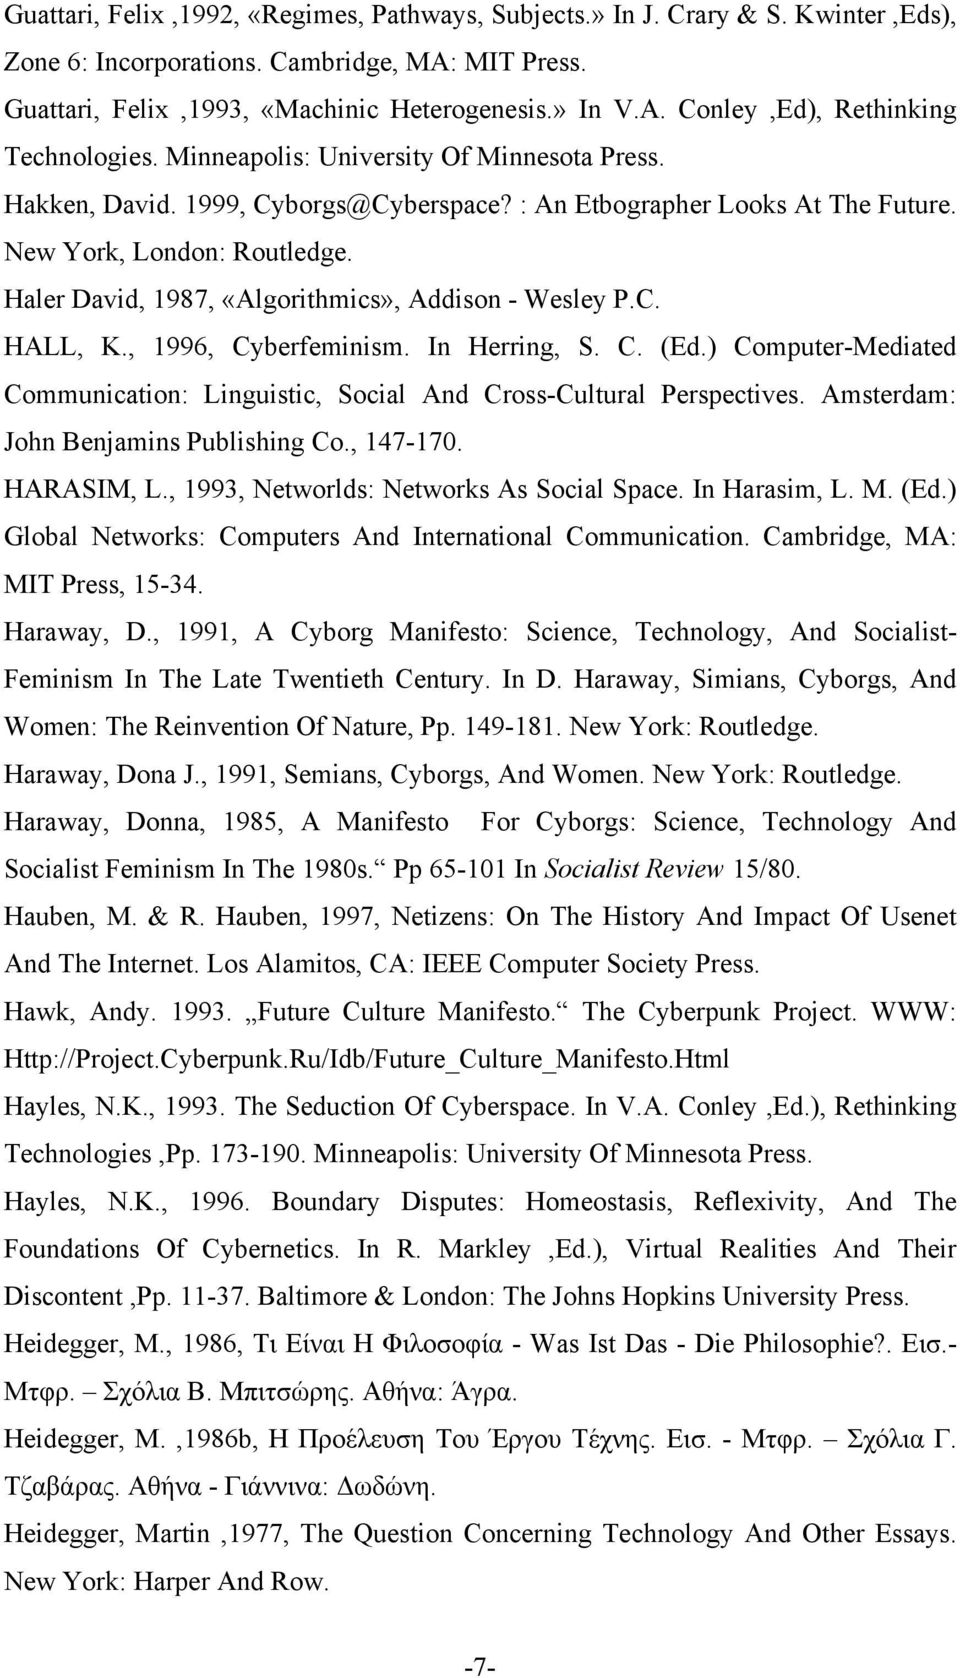 Haler David, 1987, «Algorithmics», Addison - Wesley P.C. HALL, K., 1996, Cyberfeminism. In Herring, S. C. (Ed.) Computer-Mediated Communication: Linguistic, Social And Cross-Cultural Perspectives.